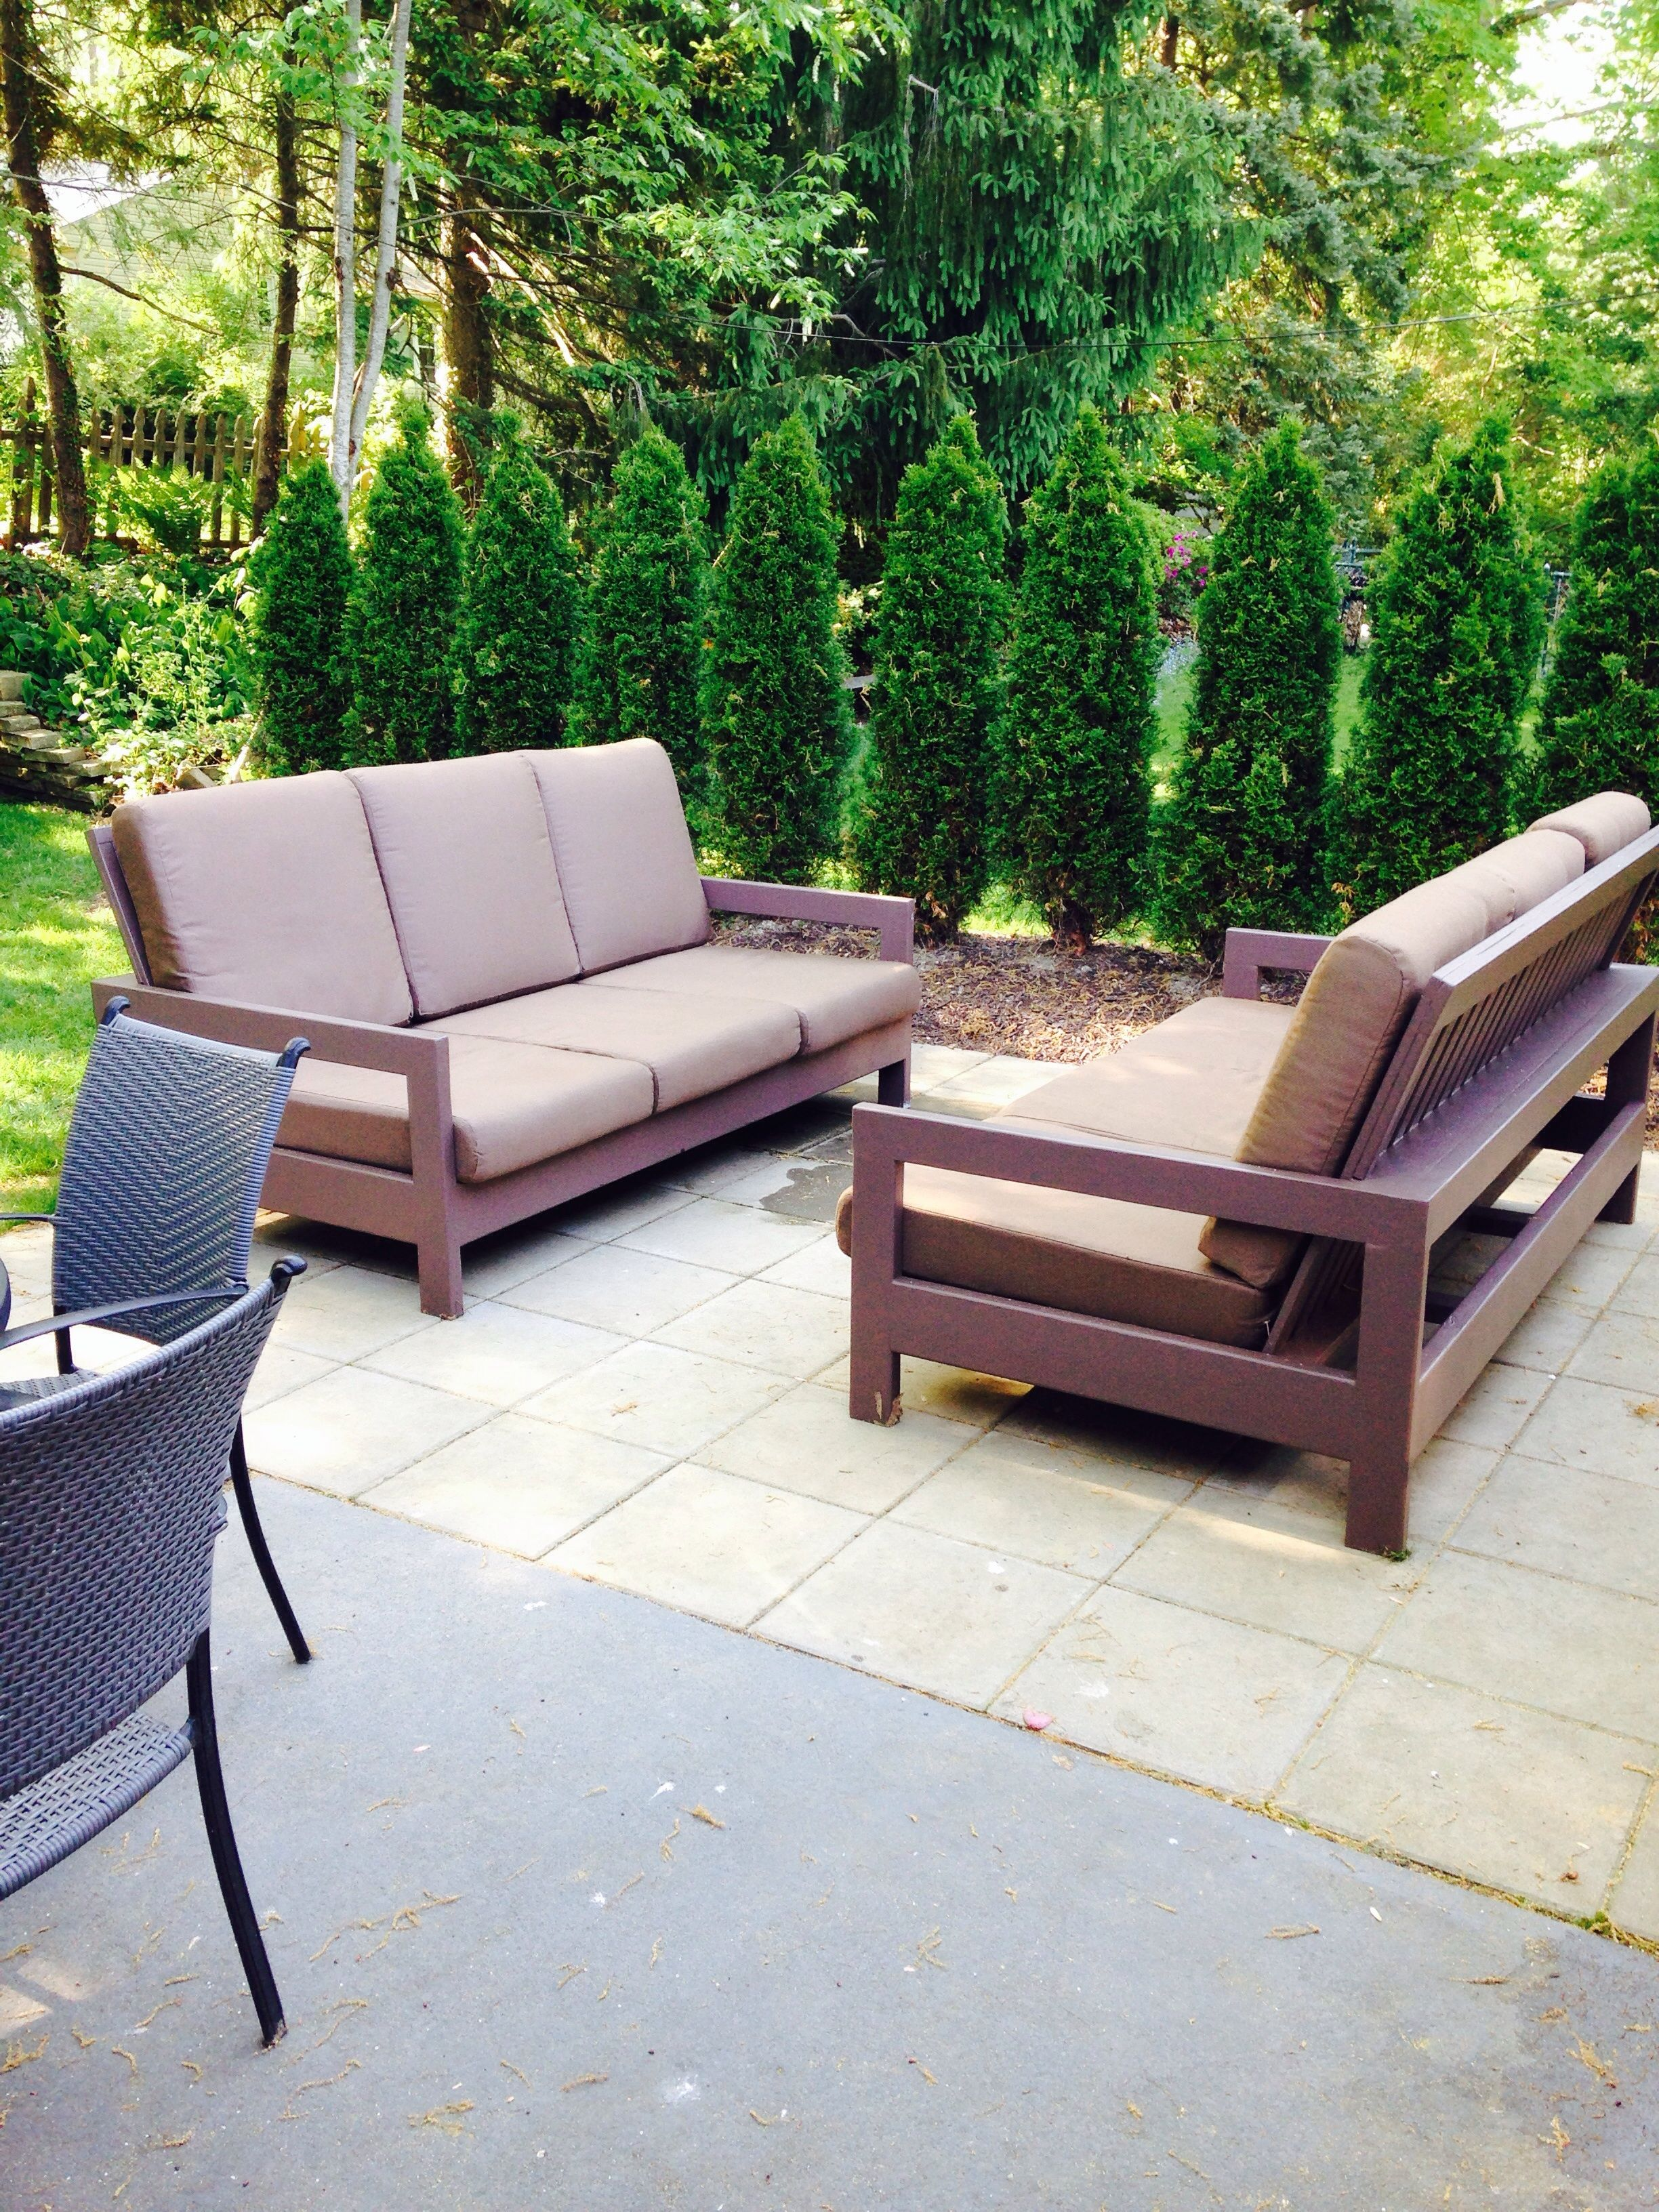 Outdoor patio couches Do It Yourself Home Projects from